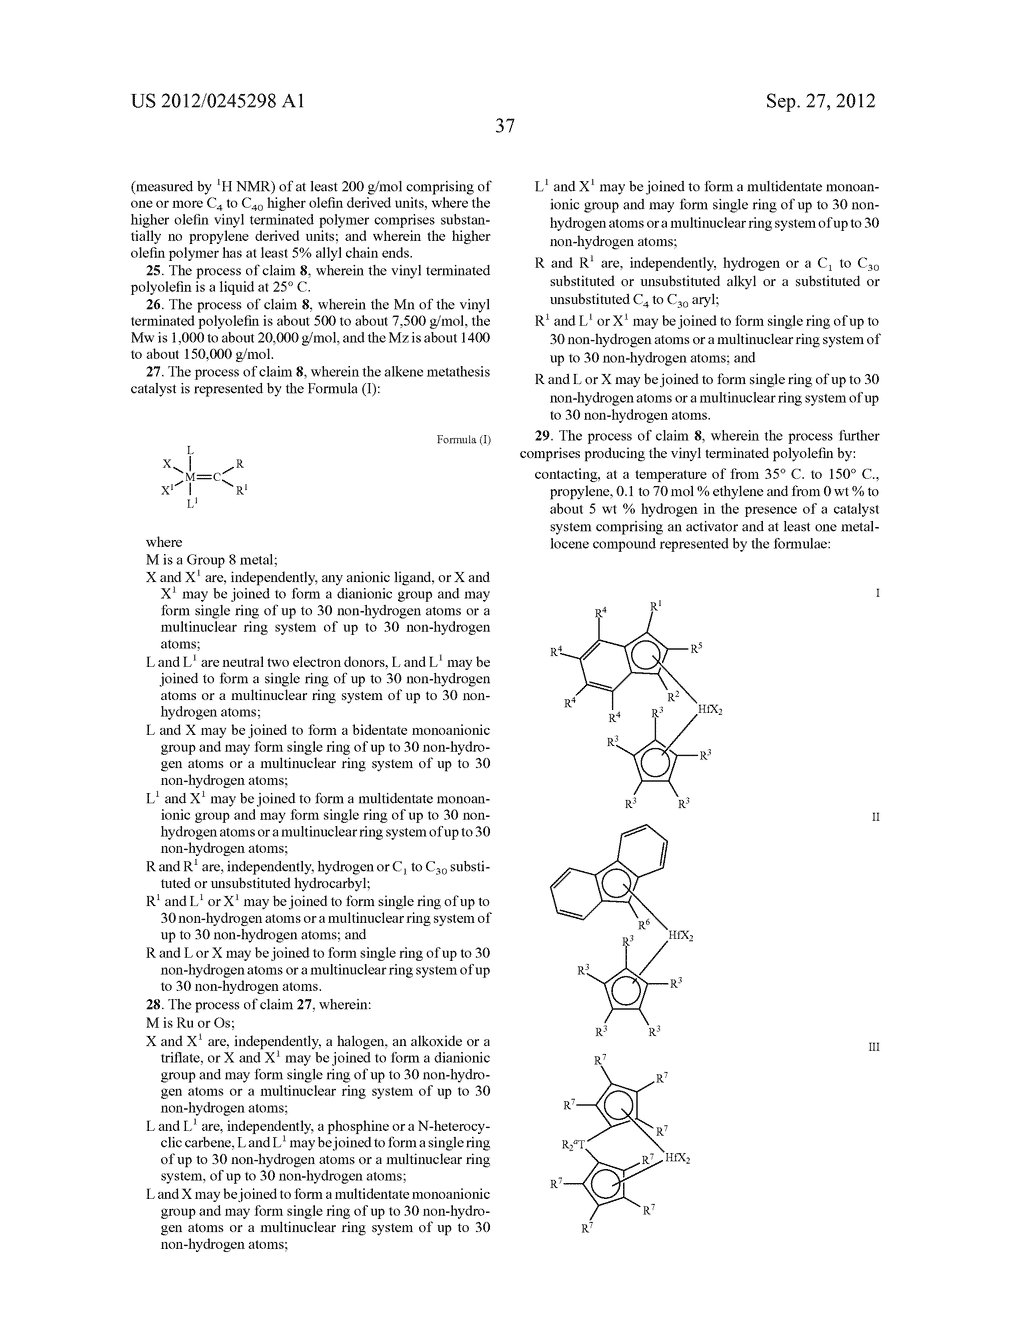 Amphiphilic Block Polymers Prepared by Alkene Metathesis - diagram, schematic, and image 38